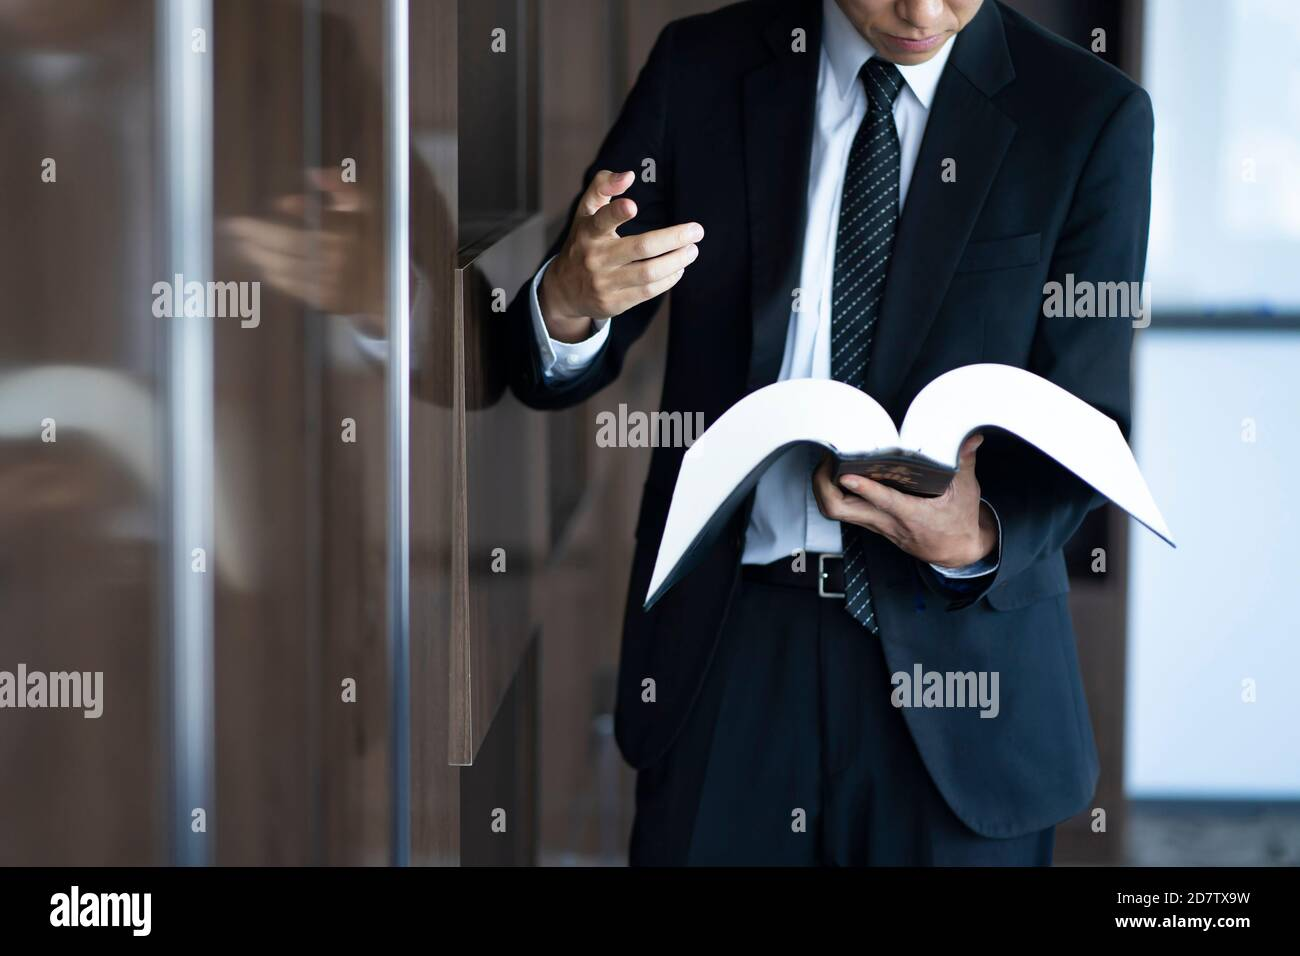 Cropped image of lawyer reading law book Stock Photo